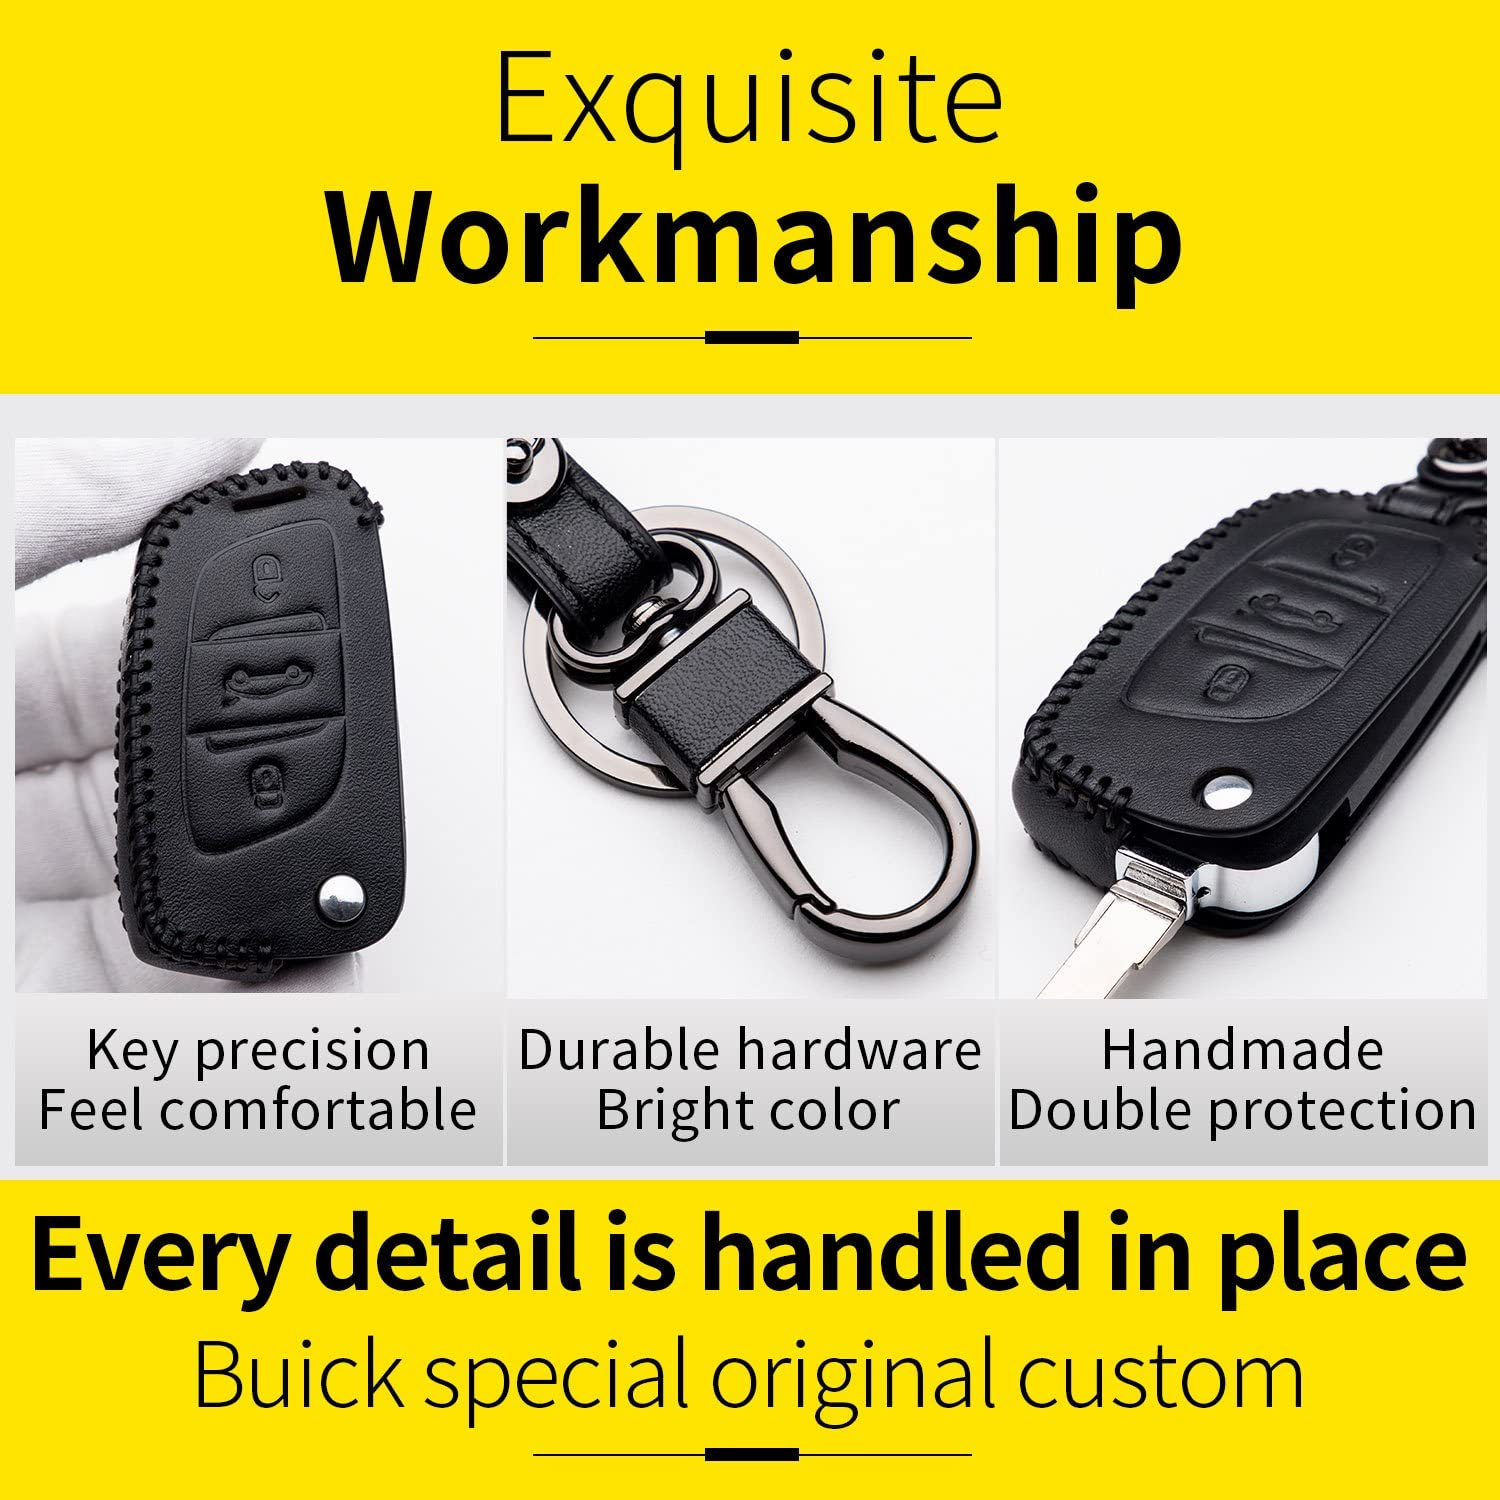 Cover Shell Fob Leather Case with Keyring for Key Peugeot 207 307 407 308 Citroen C1 C2 C3 C4 Key 3 Buttons Protection Remote Control Car